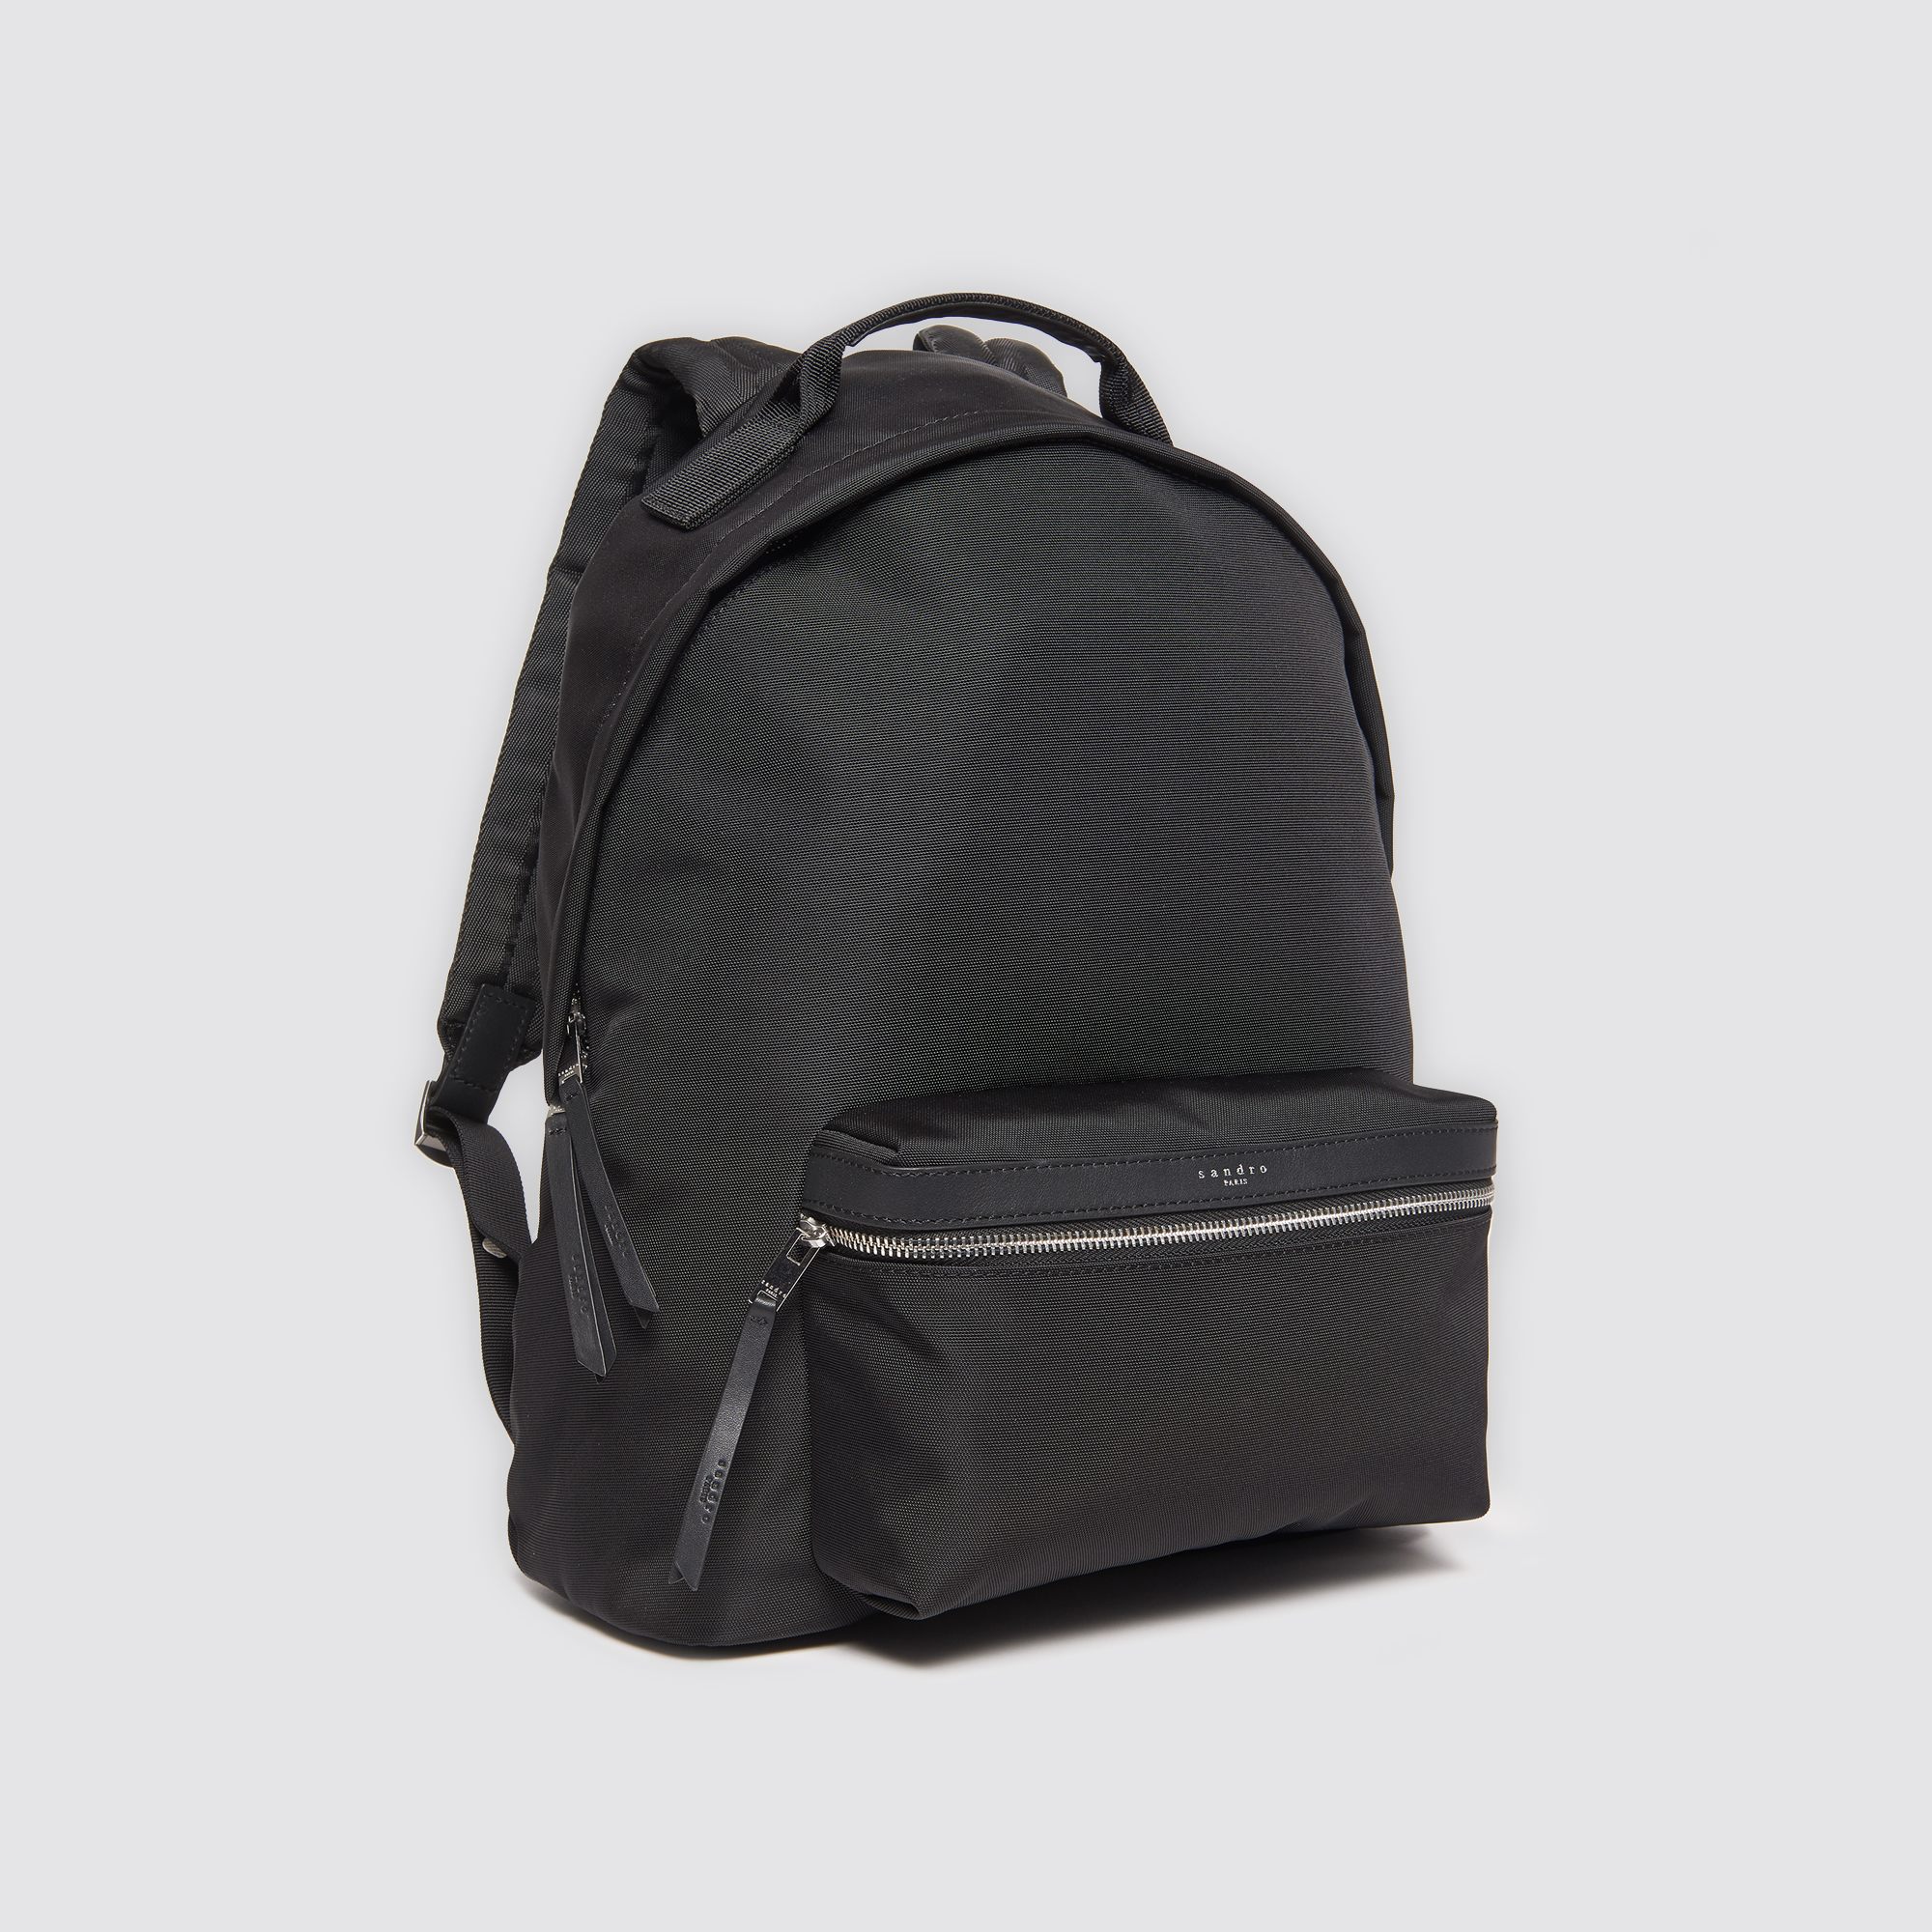 eb4651f3dc ... Technical backpack with leather details   Bags color Black ...